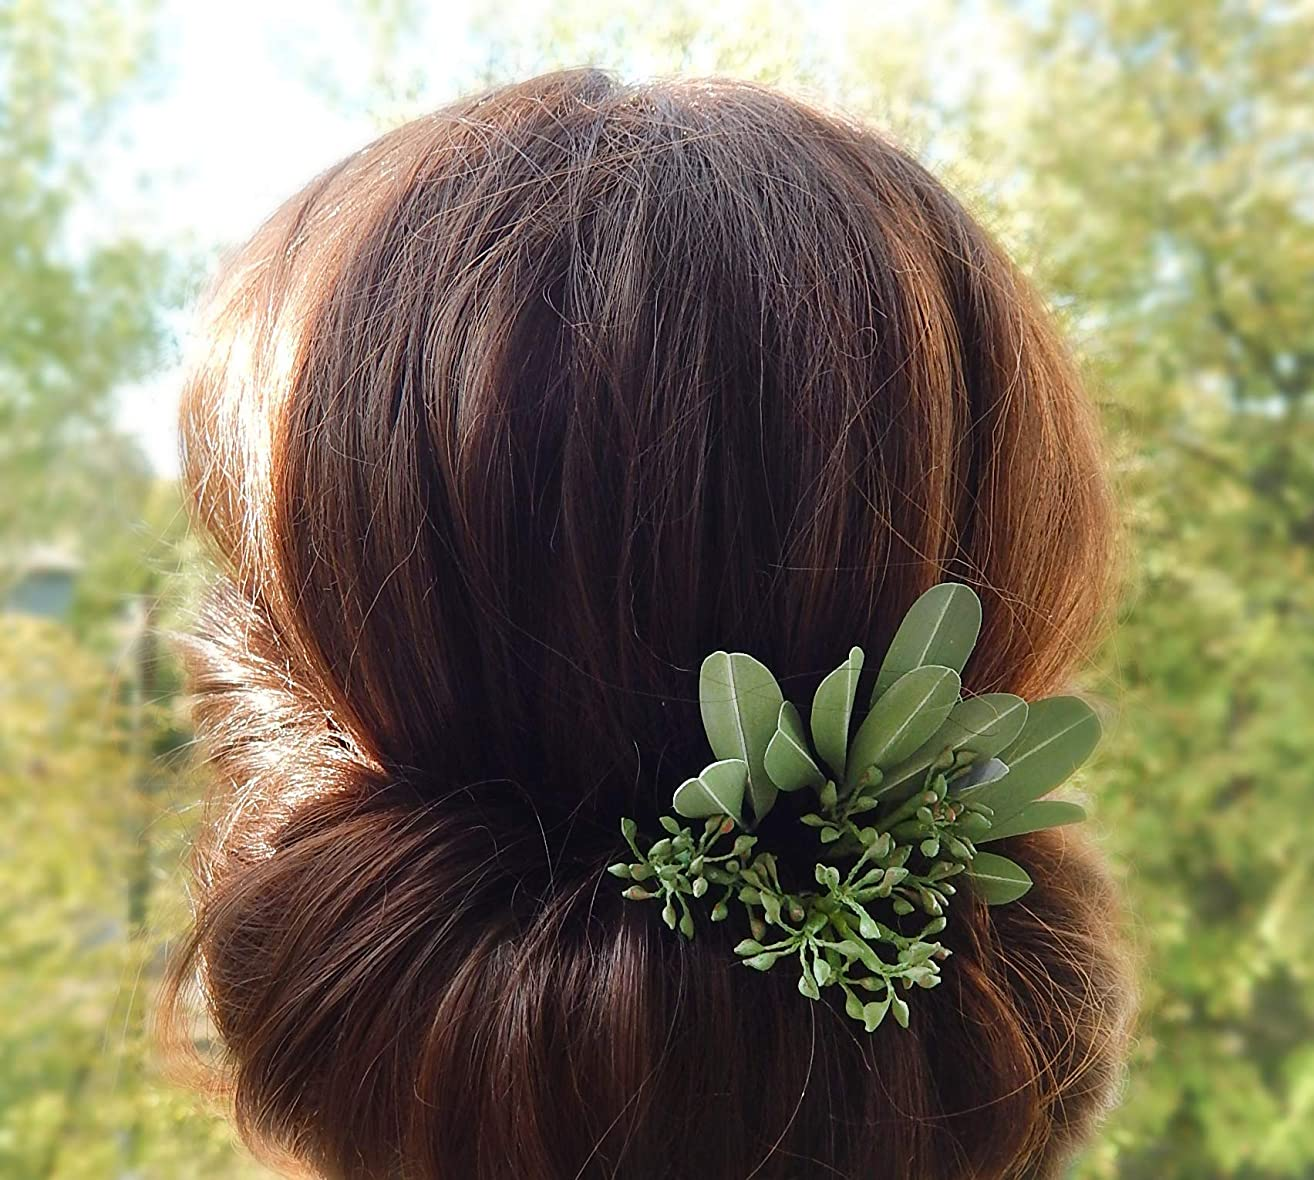 Green Hair Pins Set of 6 with Olive Leaves and Eucalyptus Greenery Wedding Hairpiece Handmade